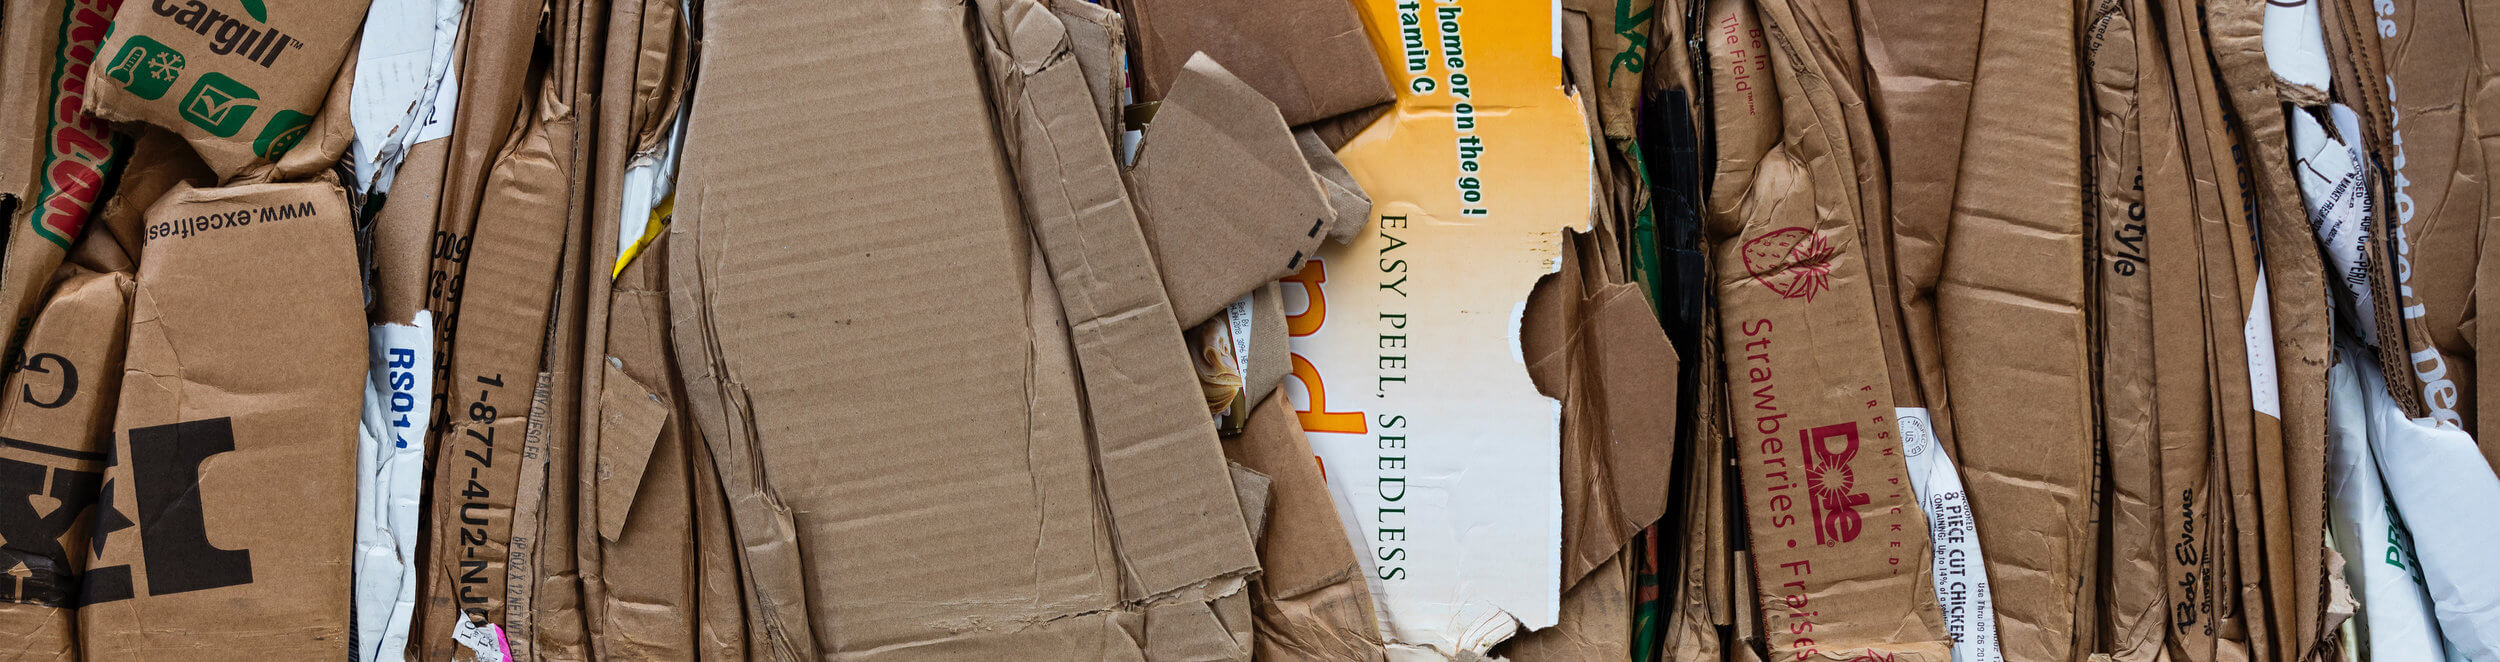 Cardboard bails for recycling